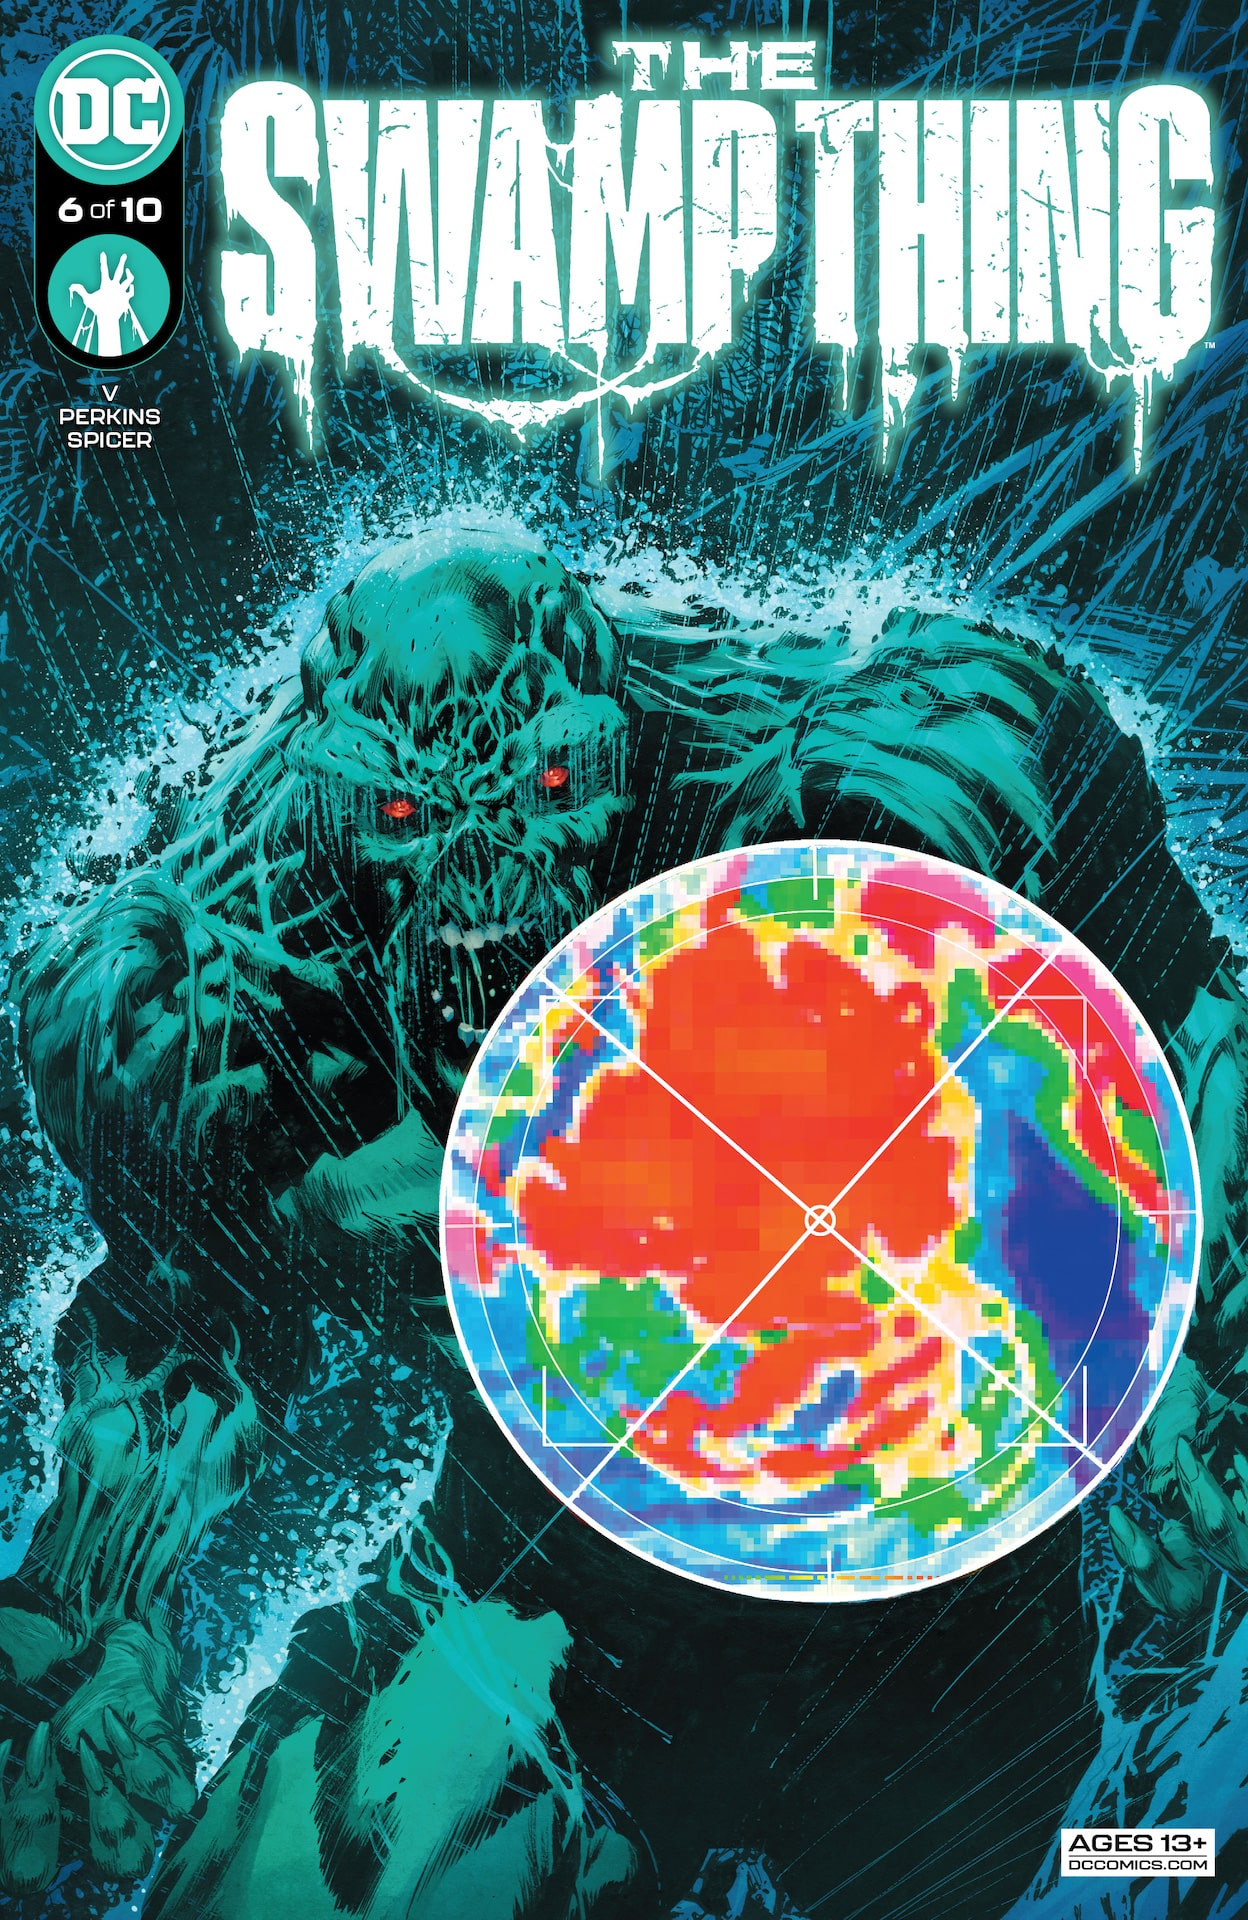 DC Preview: The Swamp Thing #6